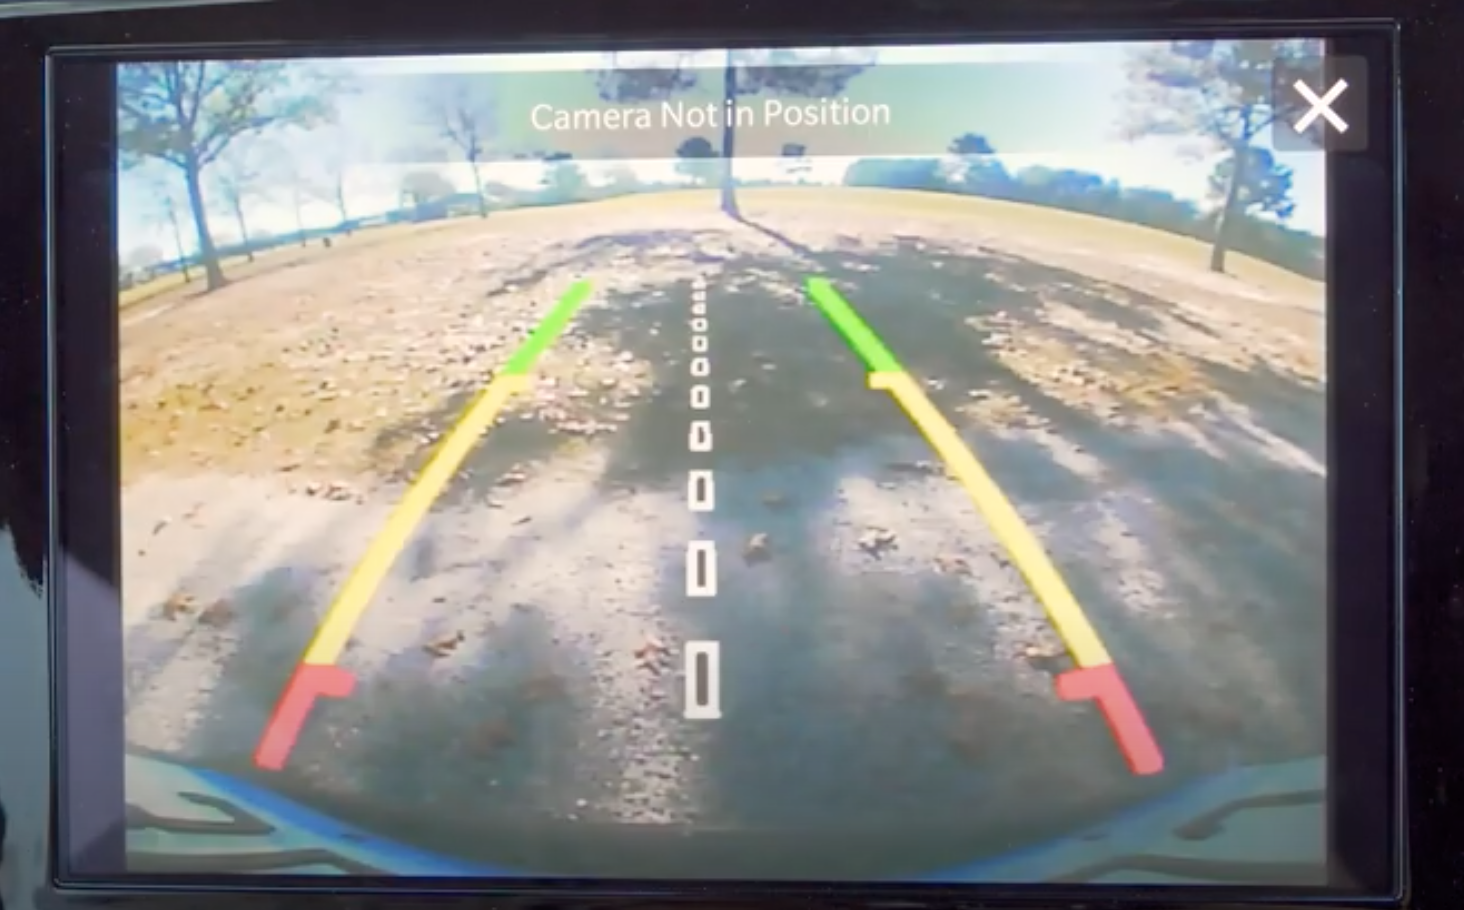 A view of the rearview camera on the infotainment display to assist with parking